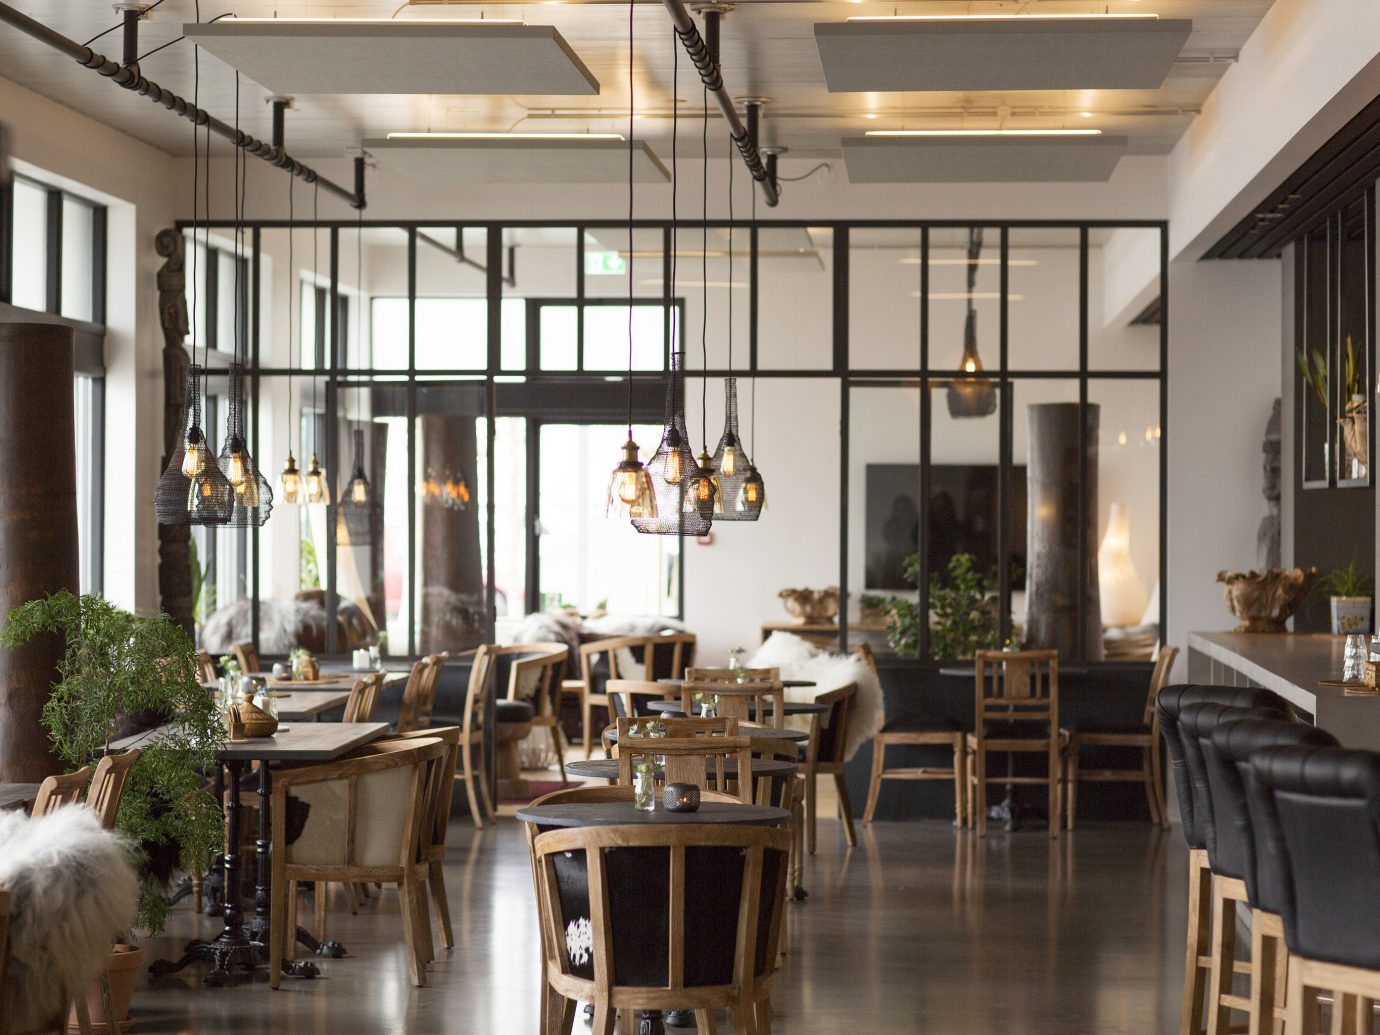 Boutique Hotels Hotels Iceland Reykjavík indoor floor interior design restaurant dining room café table furniture several dining table